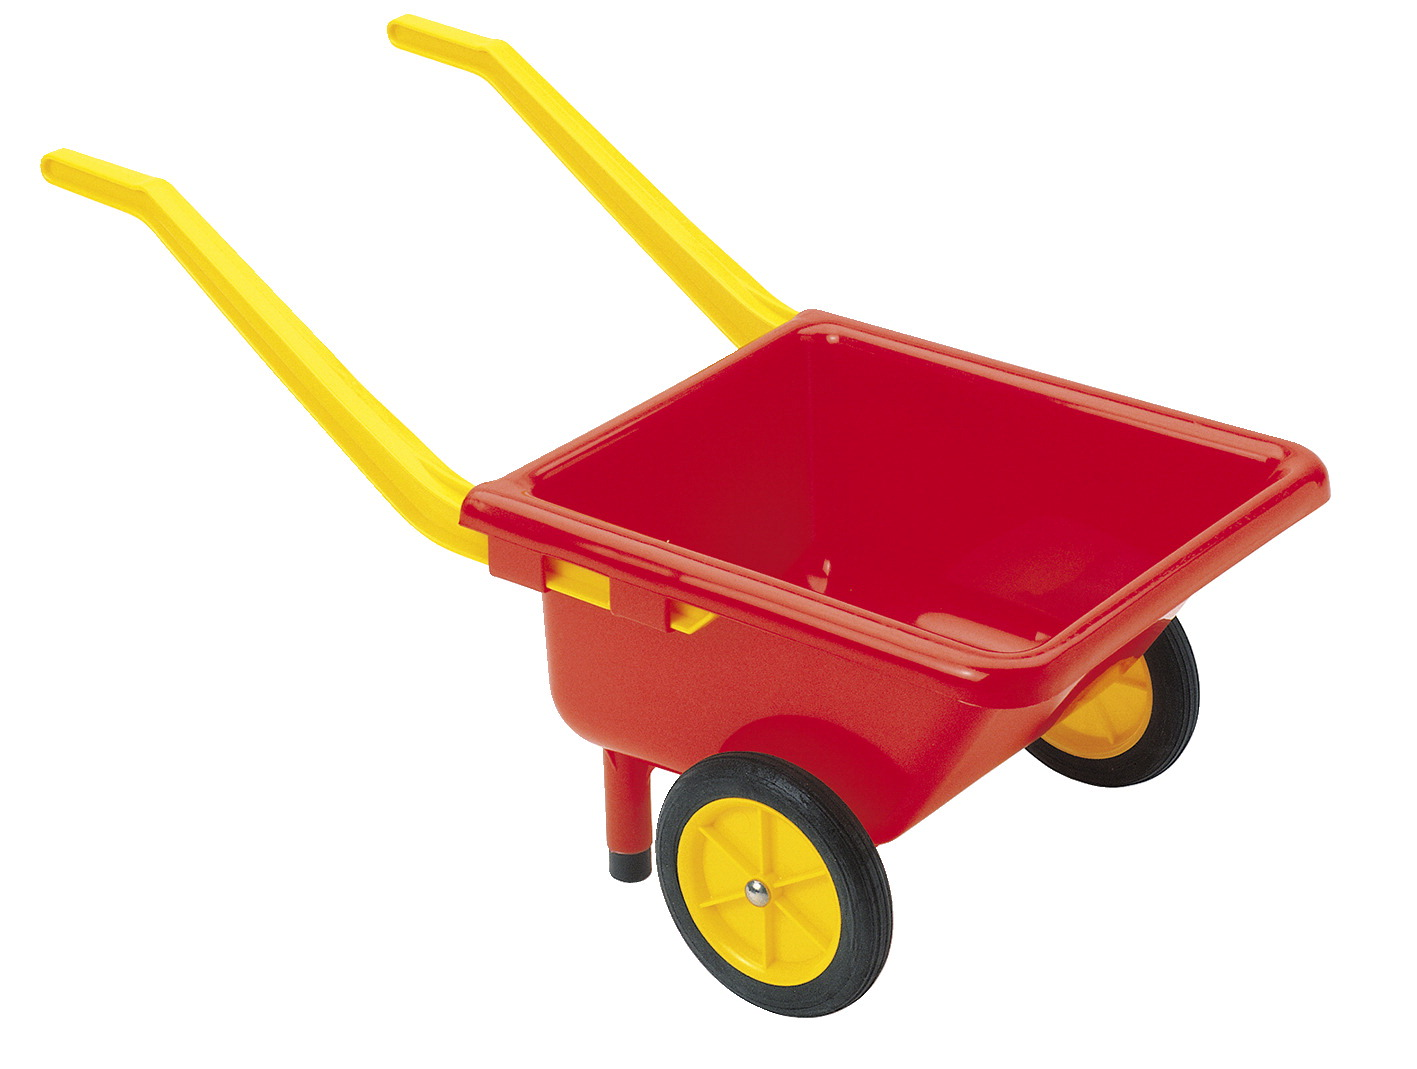 Dantoy Heavy-Duty Toy Wheelbarrow, 2 Wheels, 110 Pound Capacity, Red